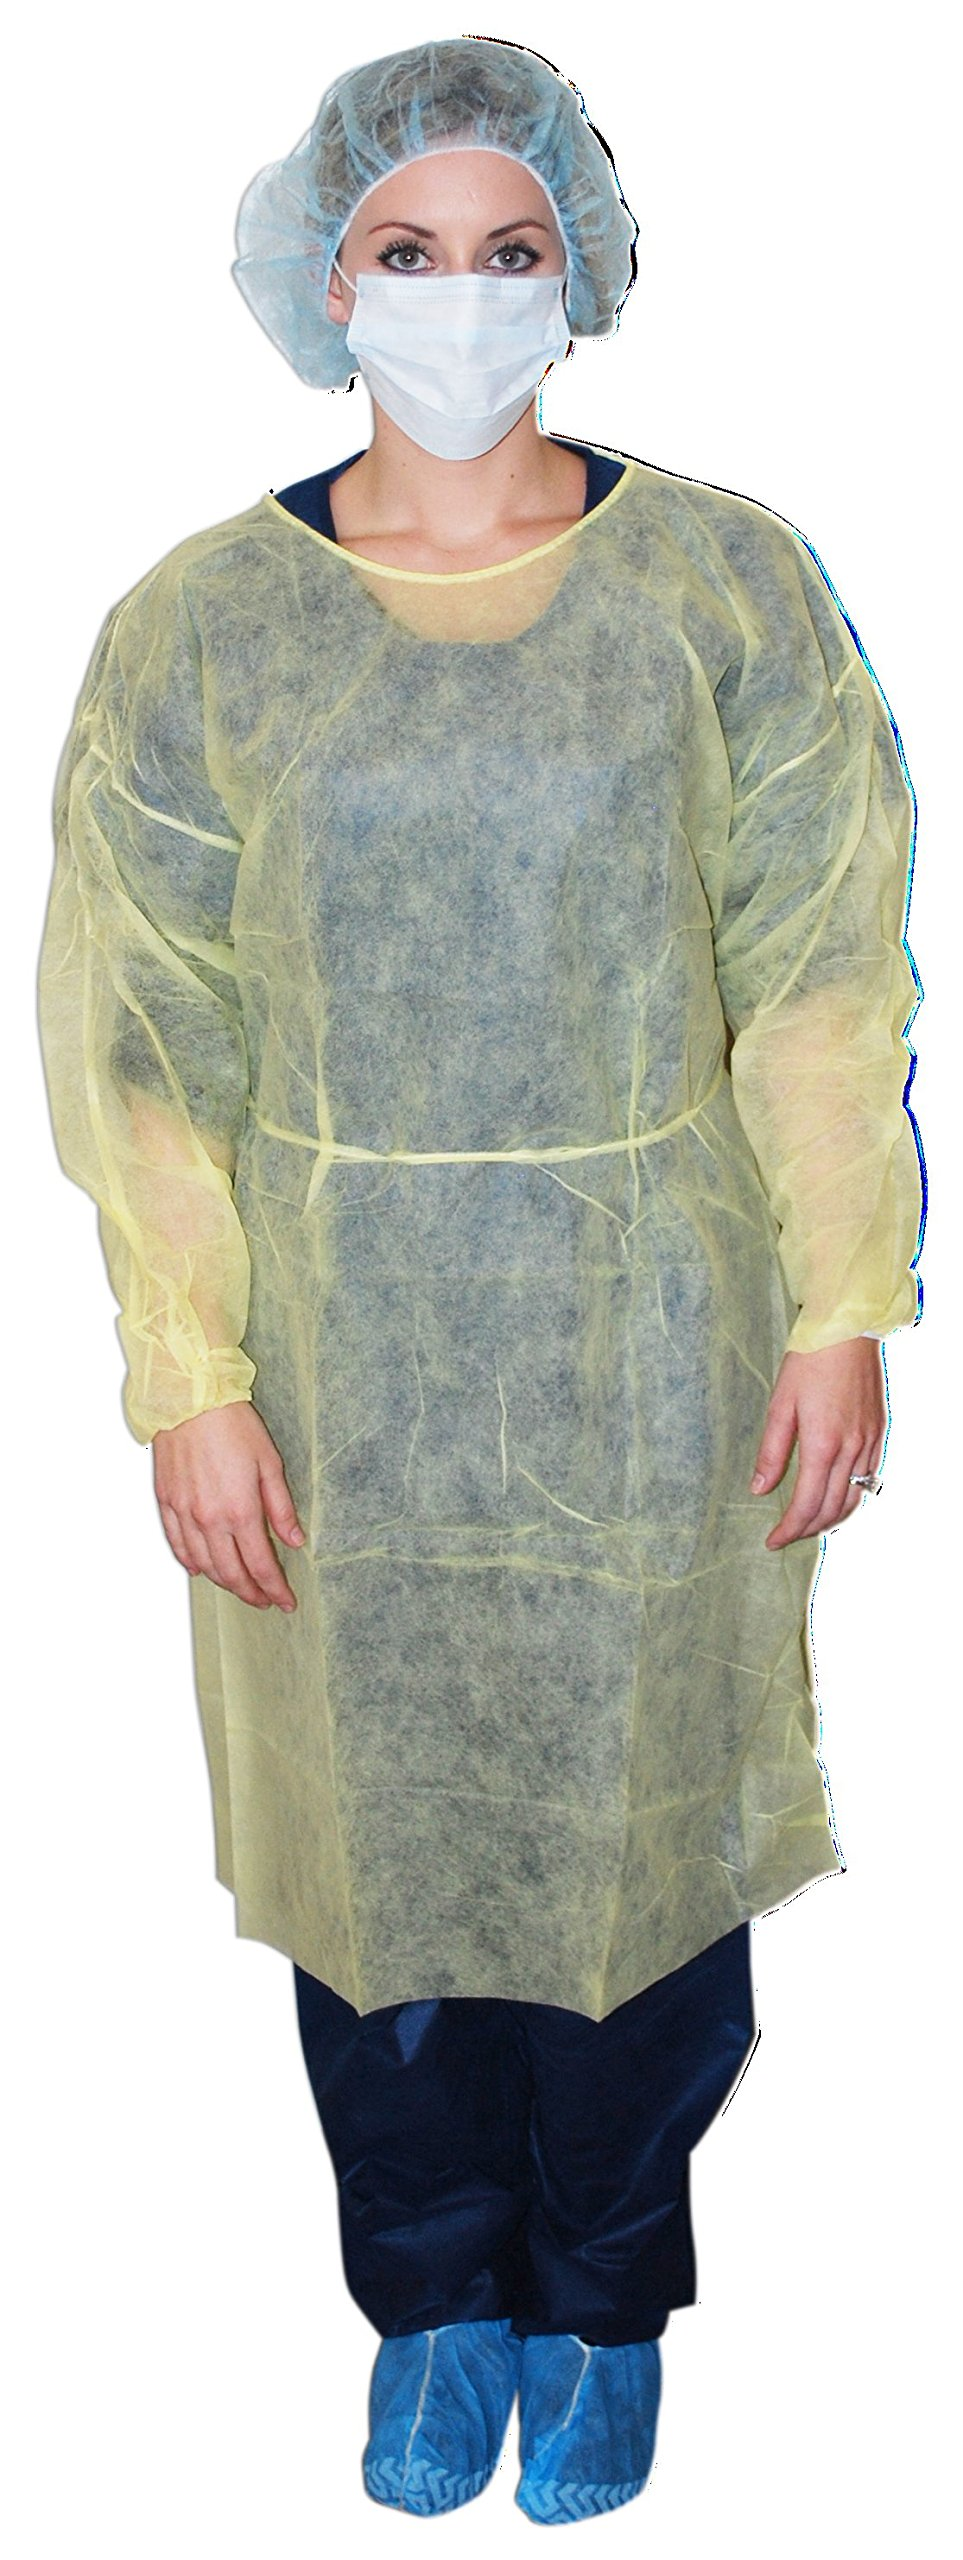 DUKAL 301XL Extra Large Isolation Gown, Yellow, Non-sterile (Pack of 50) by Dukal